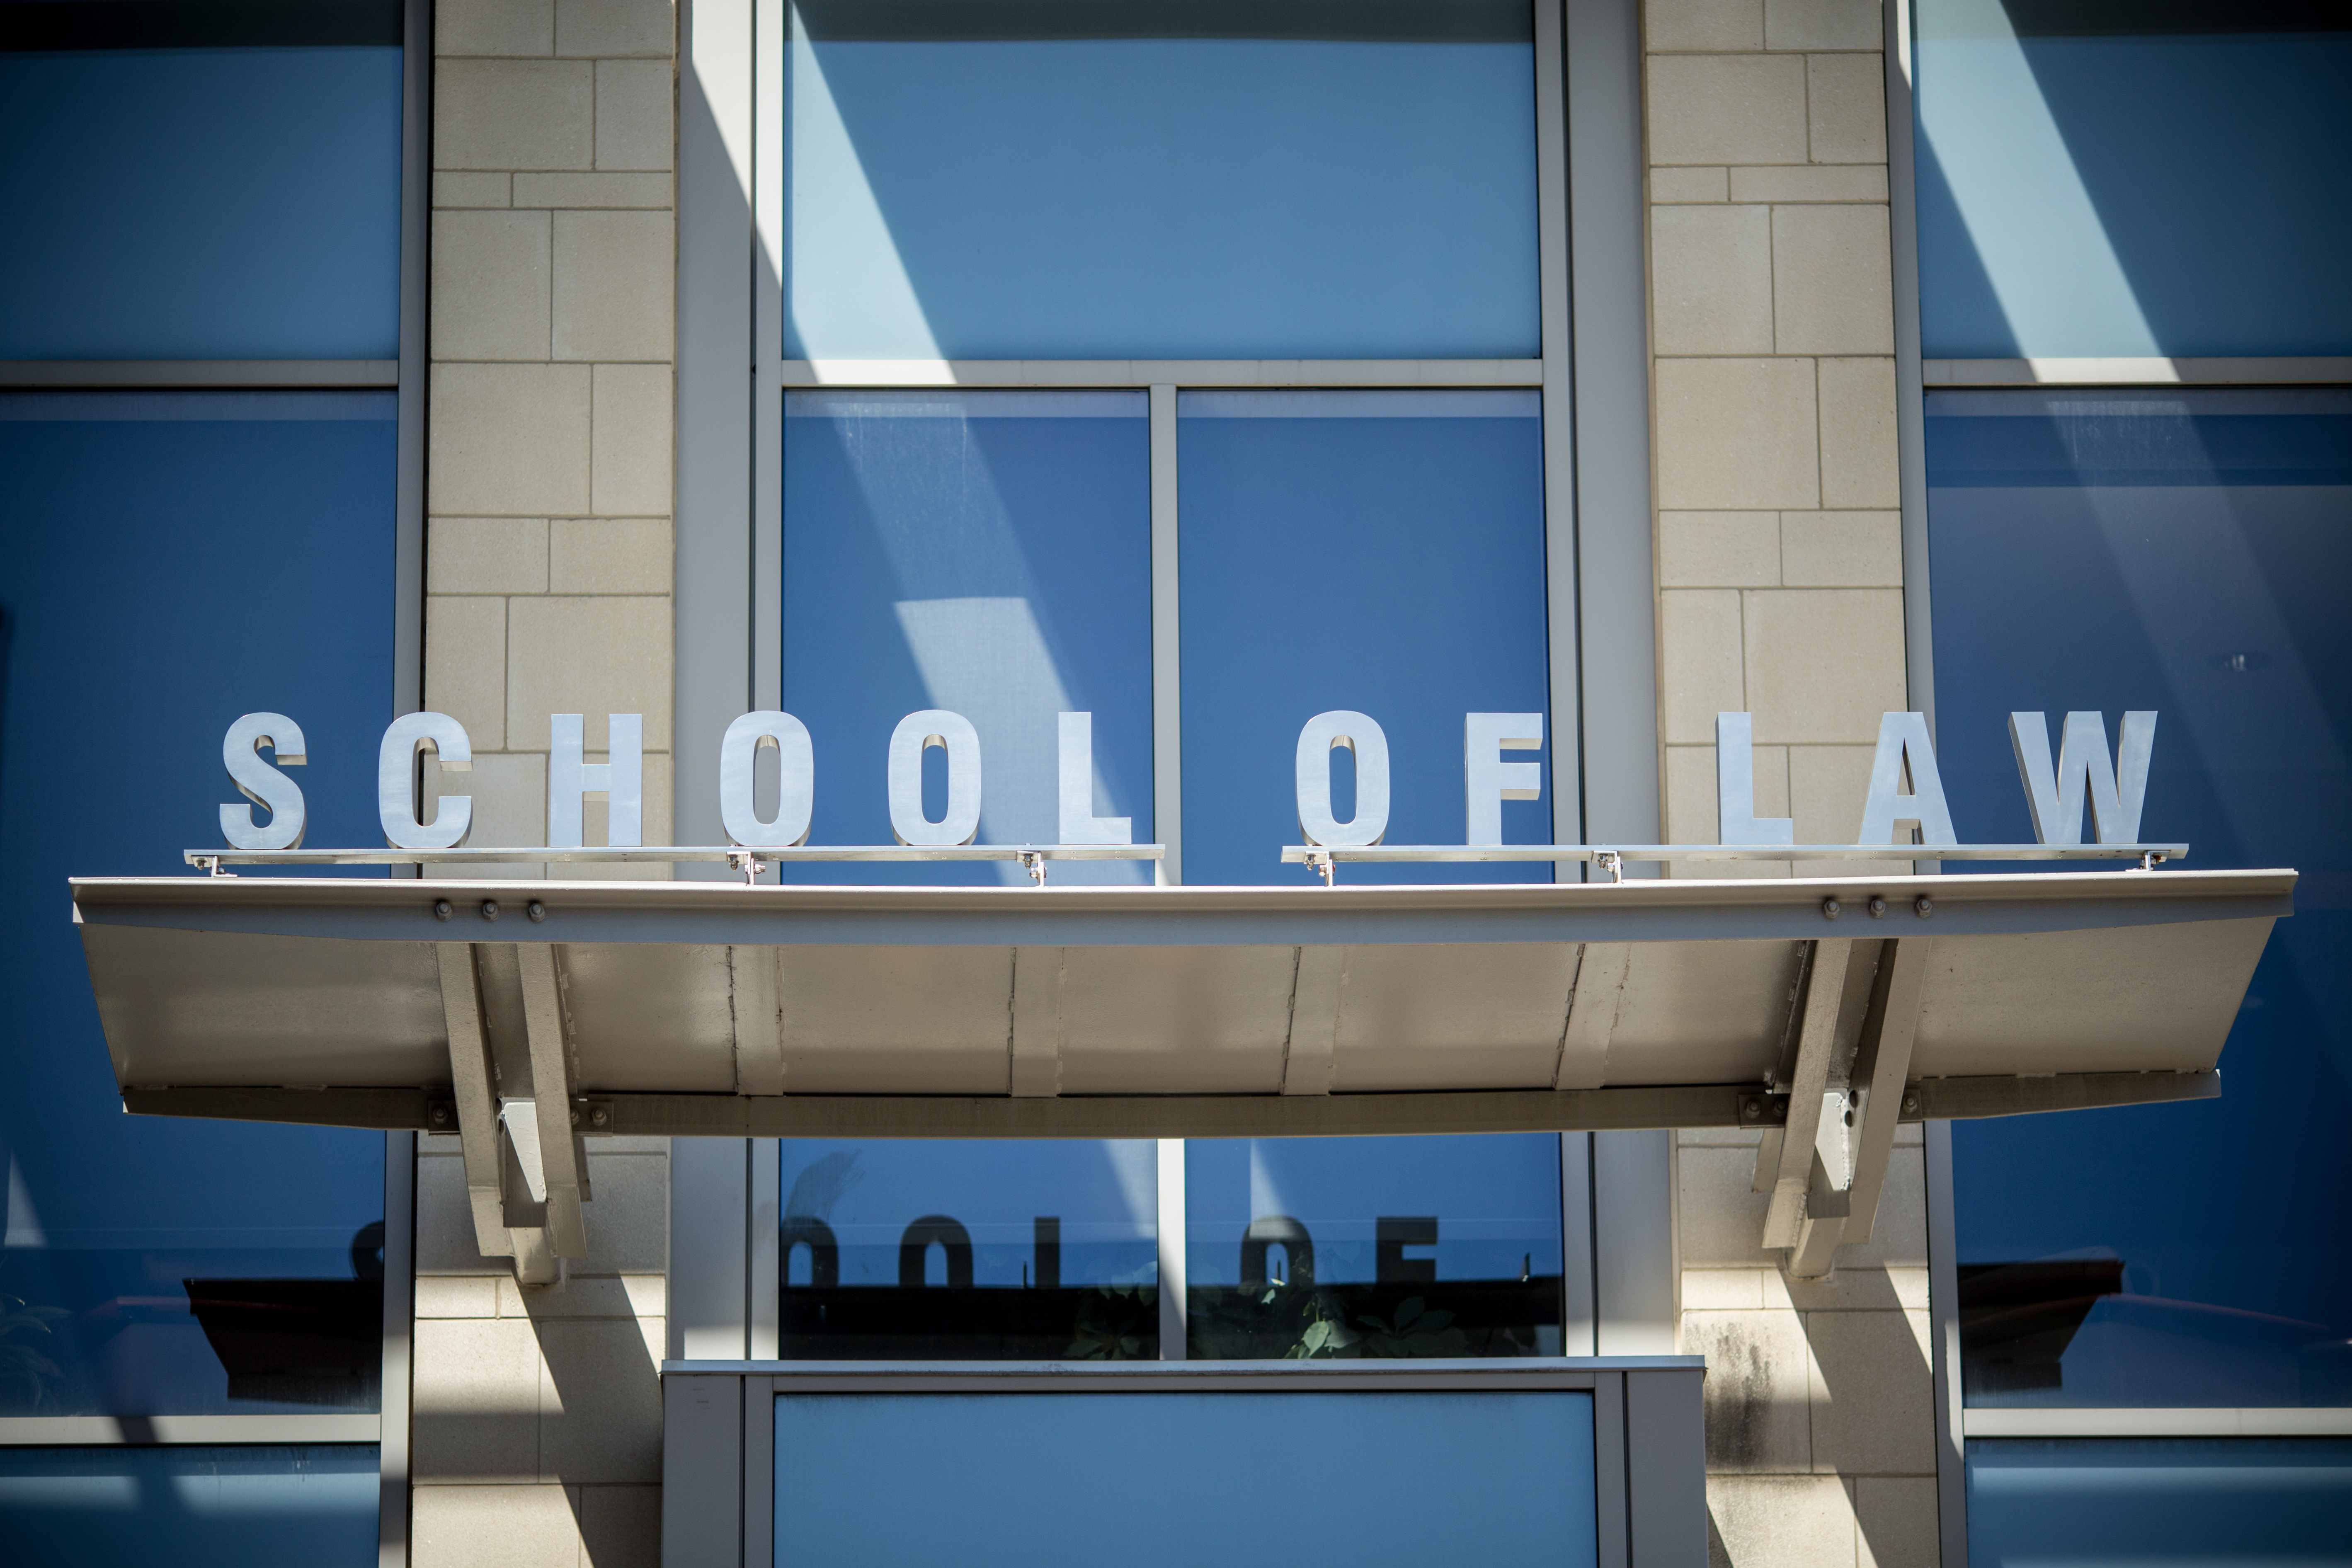 School of Law sign.